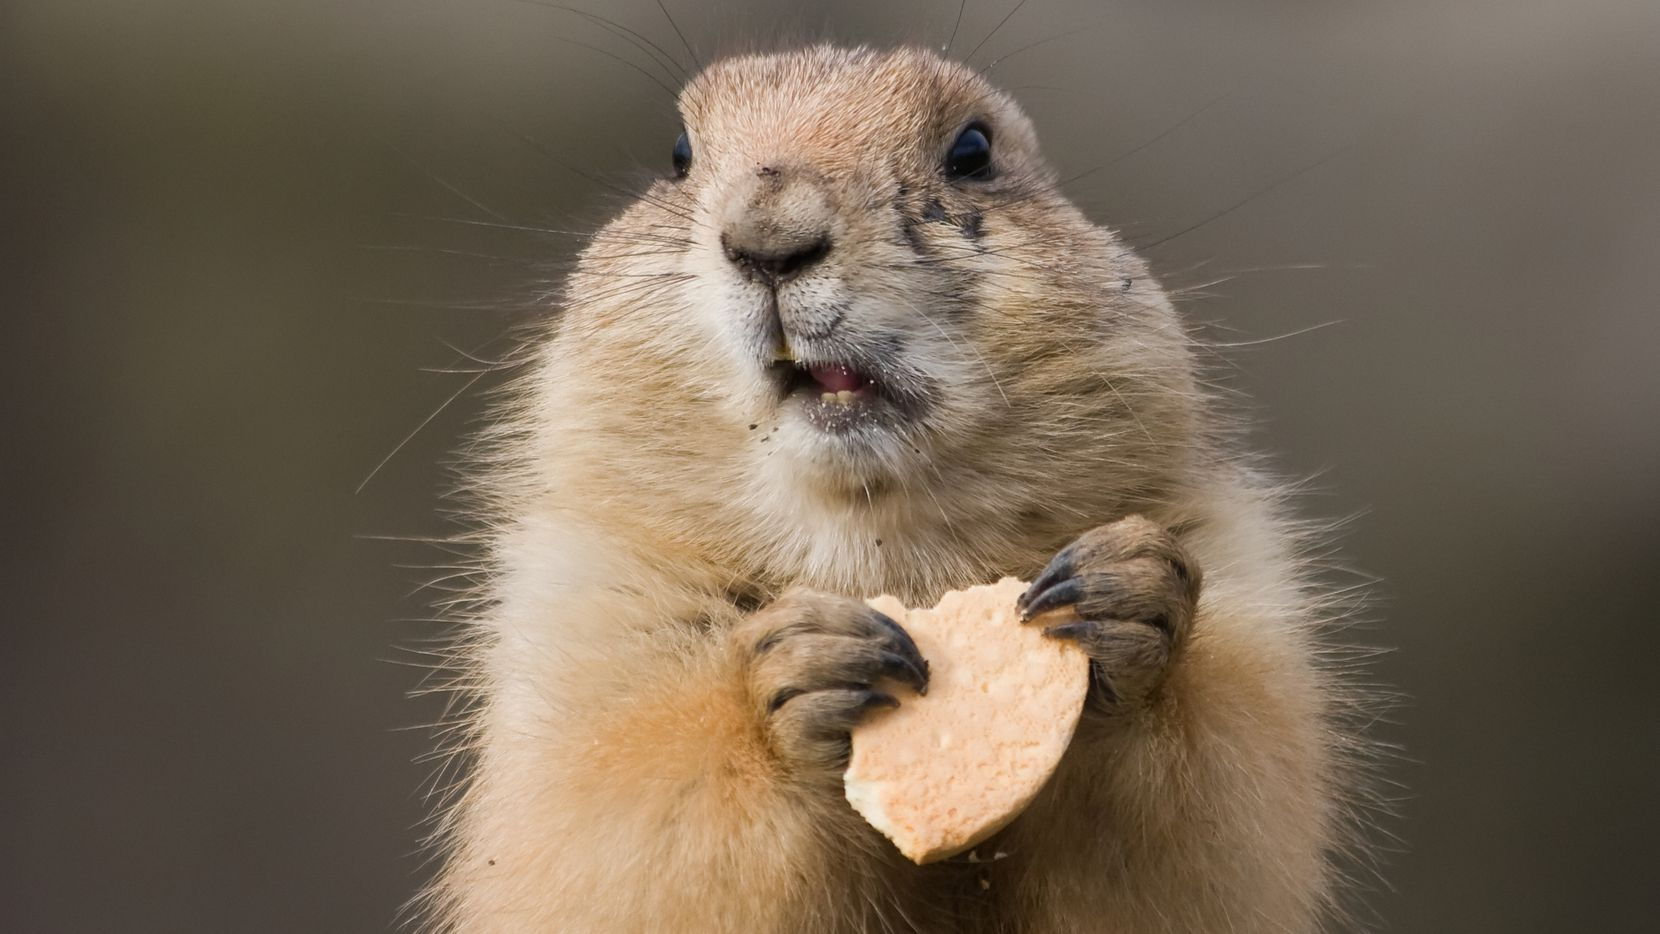 A groundhog eating a biscuit